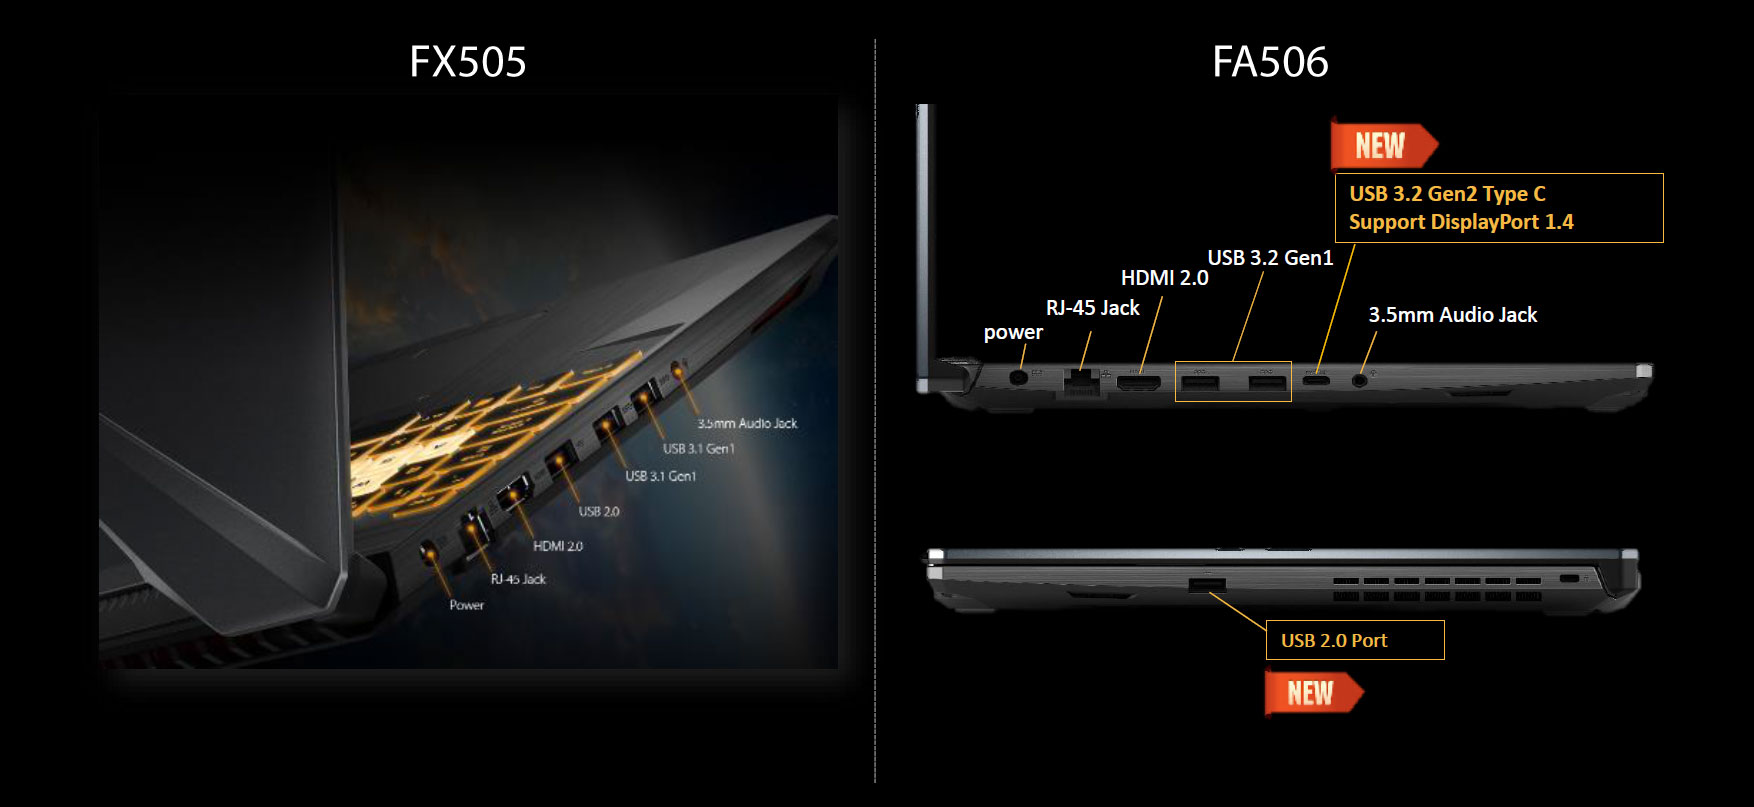 Asus TUF Gaming A15 FA506 - redesigned ports